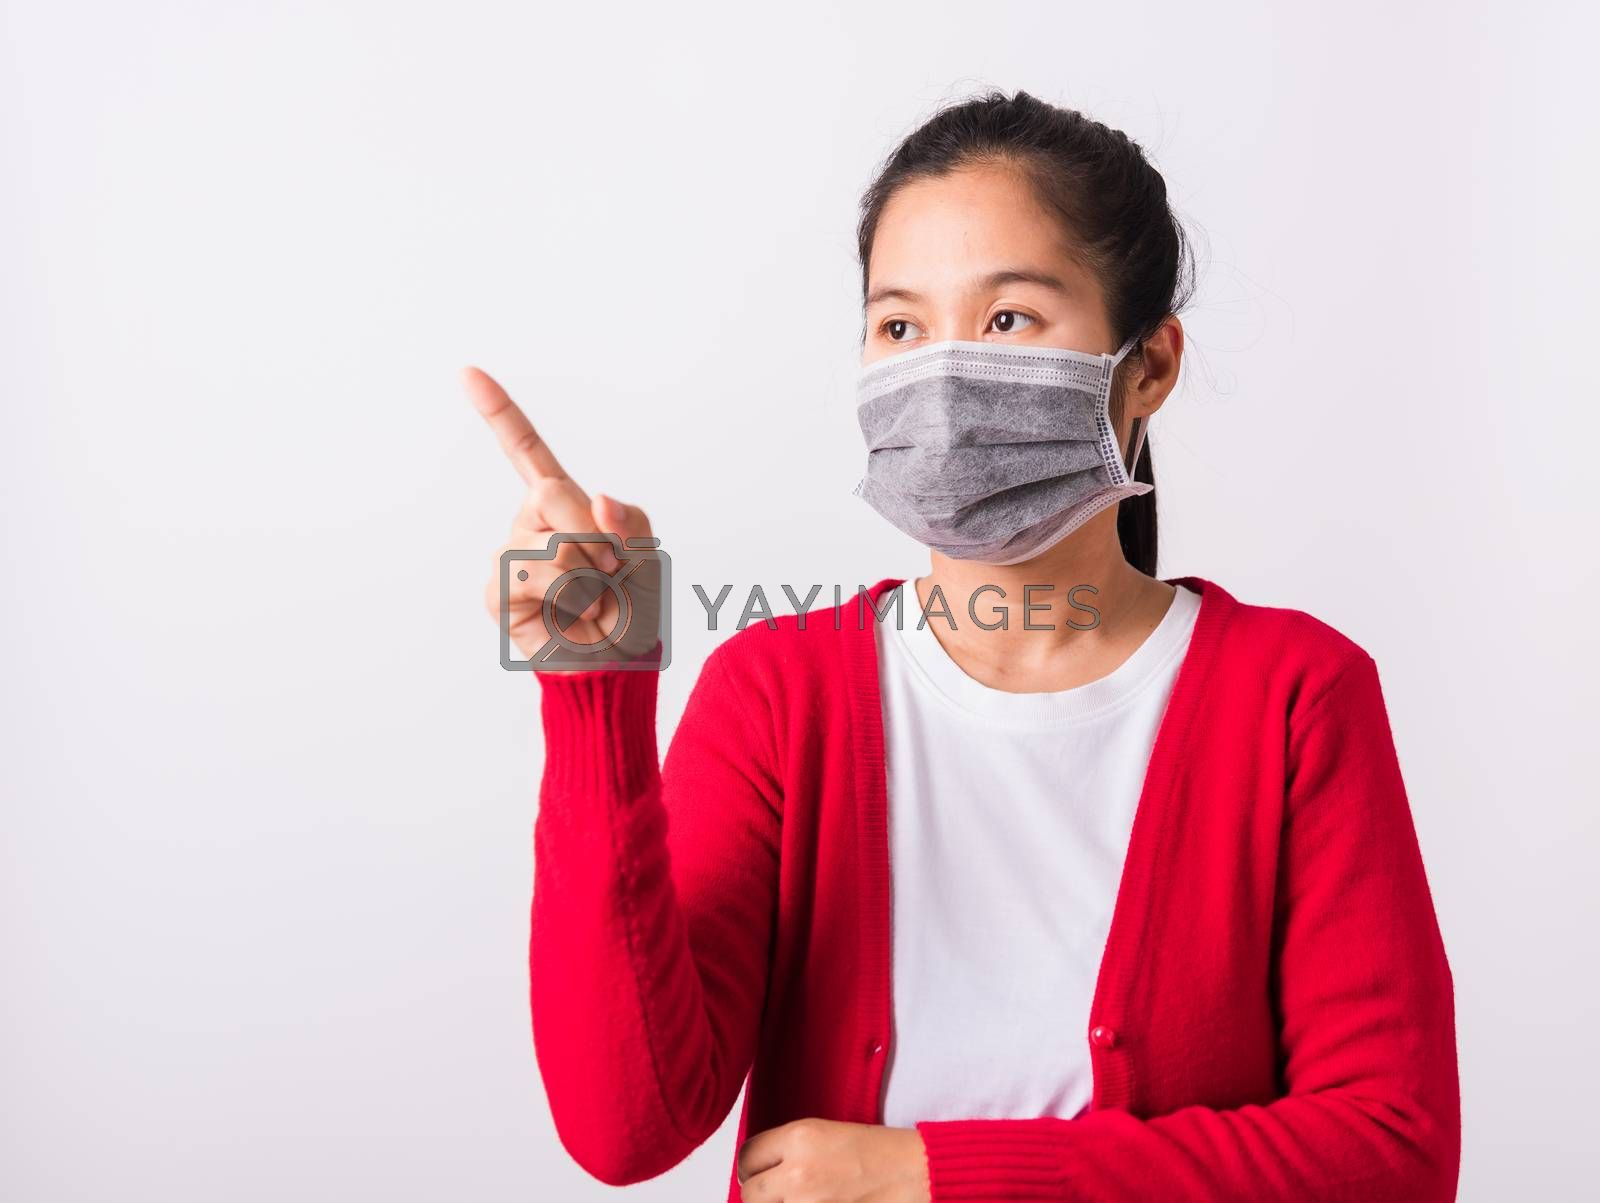 Asian adult woman wearing red shirt and face mask protective against coronavirus or COVID-19 virus or filter dust, air pollution her point finger to side space, studio shot isolated white background